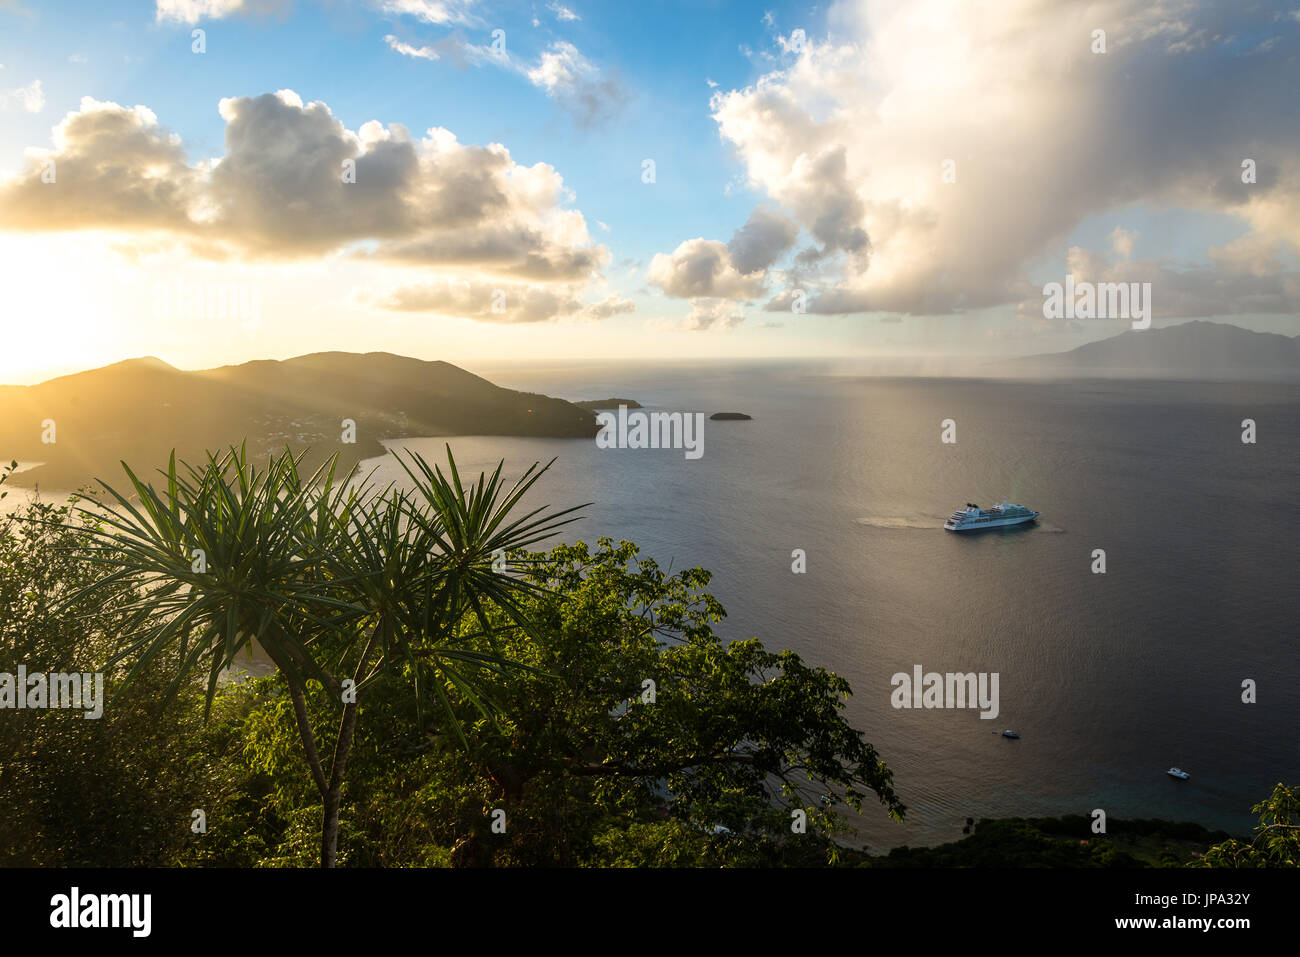 Island of the Saints during sunset, Guadeloupe - Stock Image